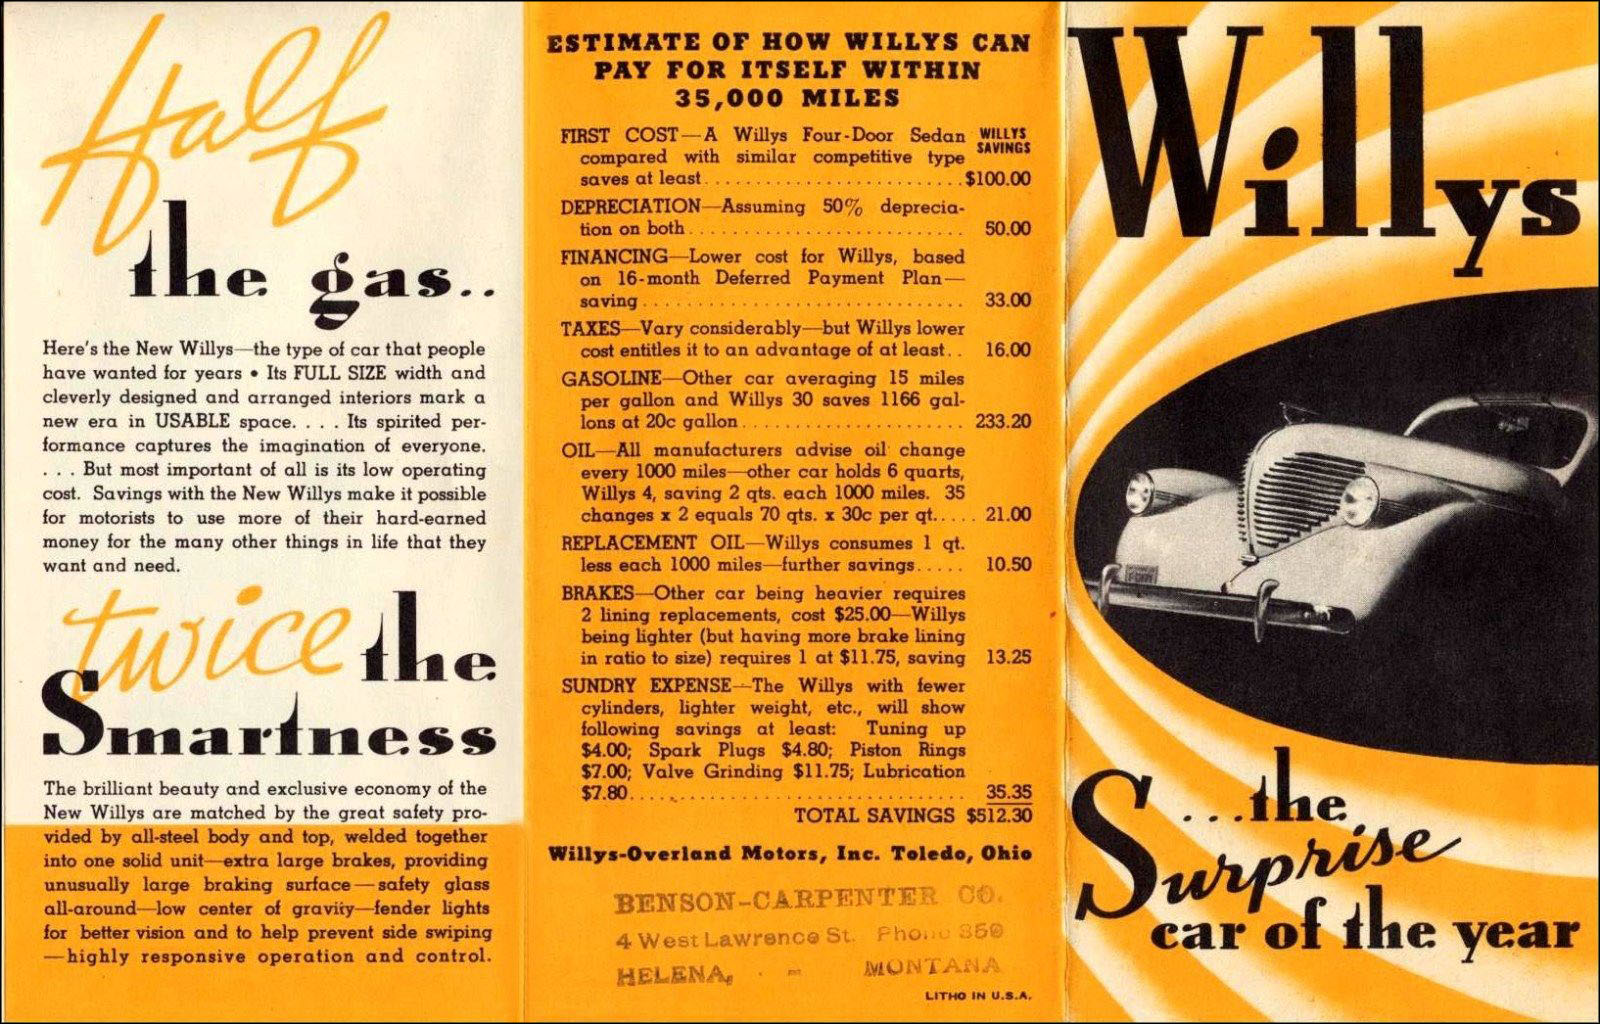 1937 Willys car brochure